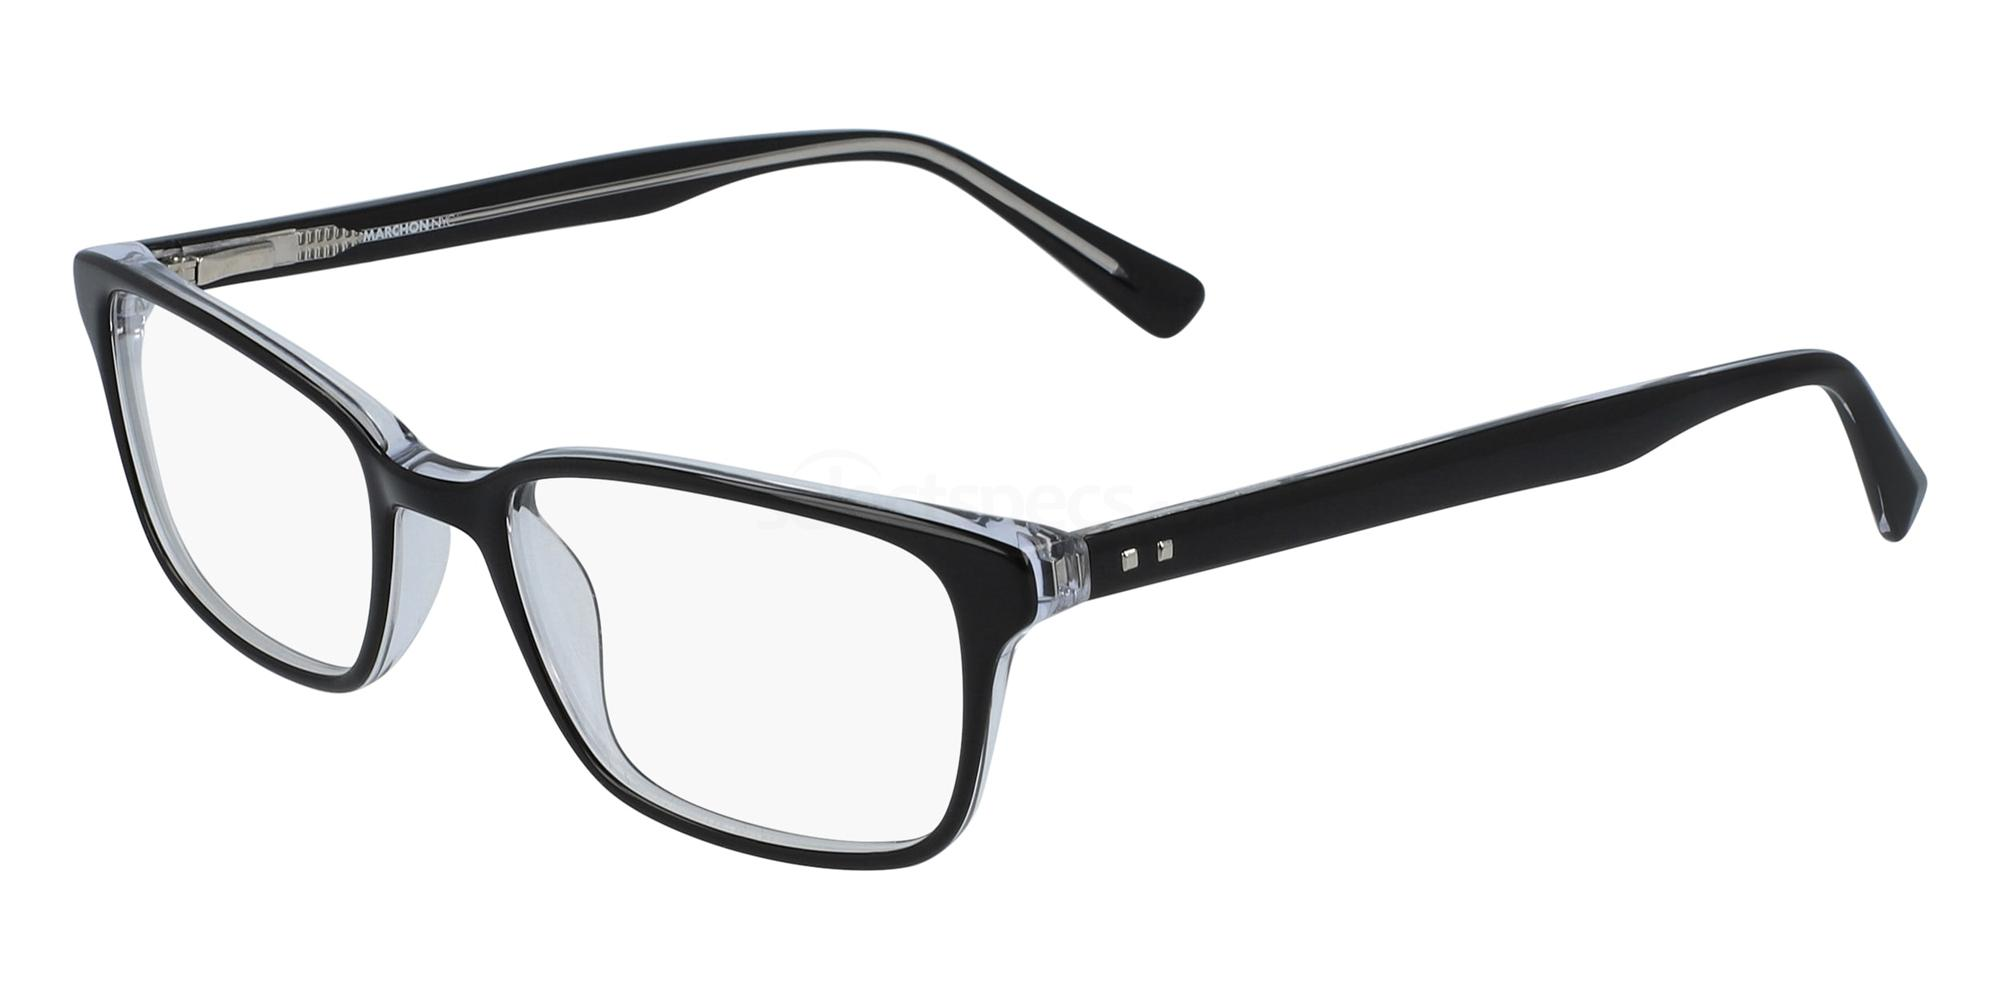 001 M-3501 Glasses, Marchon